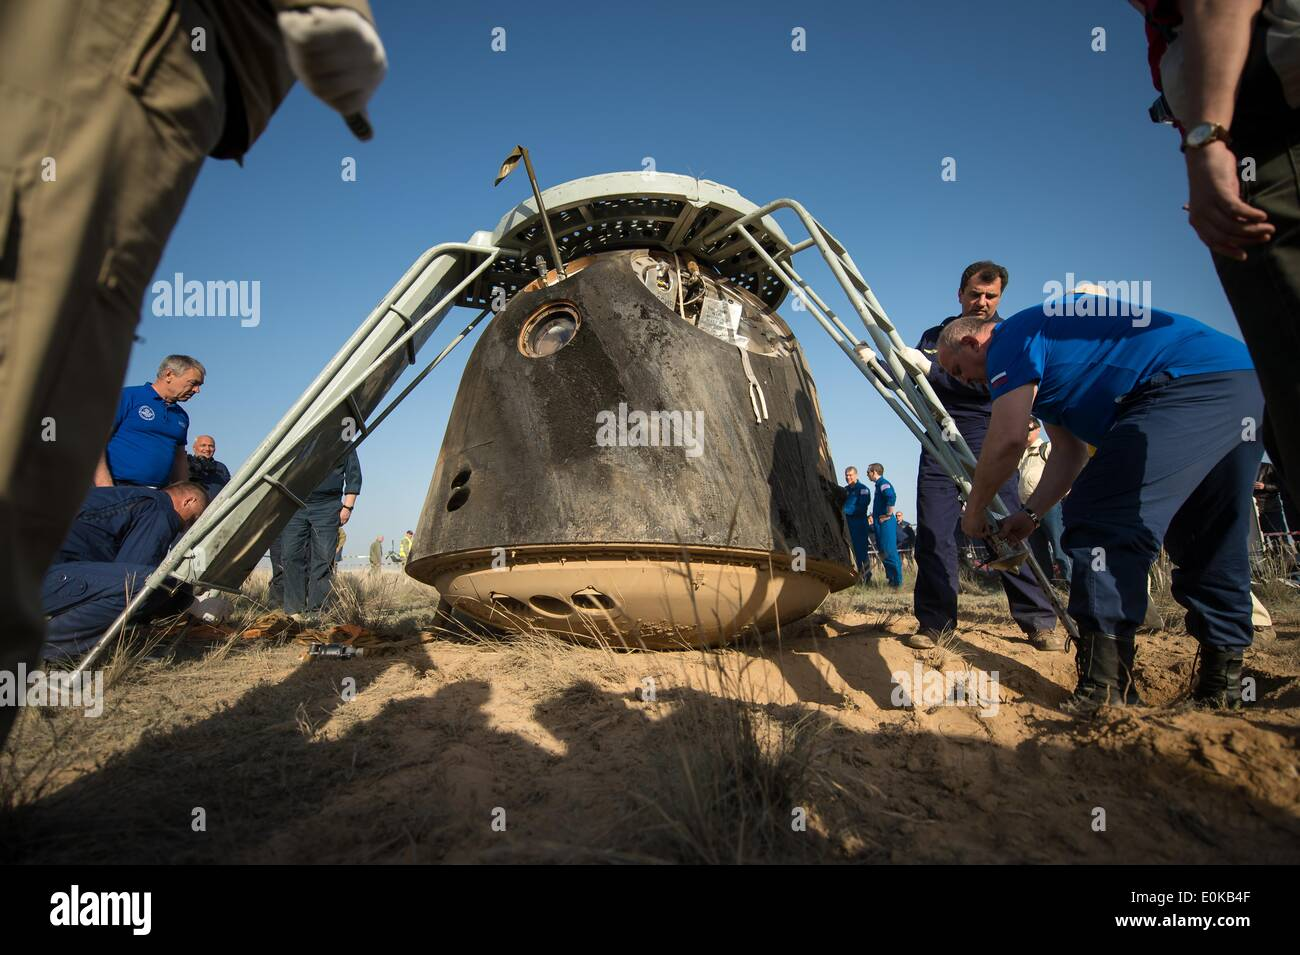 Support personnel prepare to exact the crew from the Soyuz TMA-11M spacecraft shortly after it landed carrying ISS Expedition 39 crew members May 14, 2014 near the town of Zhezkazgan, Kazakhstan. Wakata, Tyurin and Mastracchio returned to Earth after more than six months onboard the International Space Station where they served as members of the Expedition 38 and 39 crews. - Stock Image